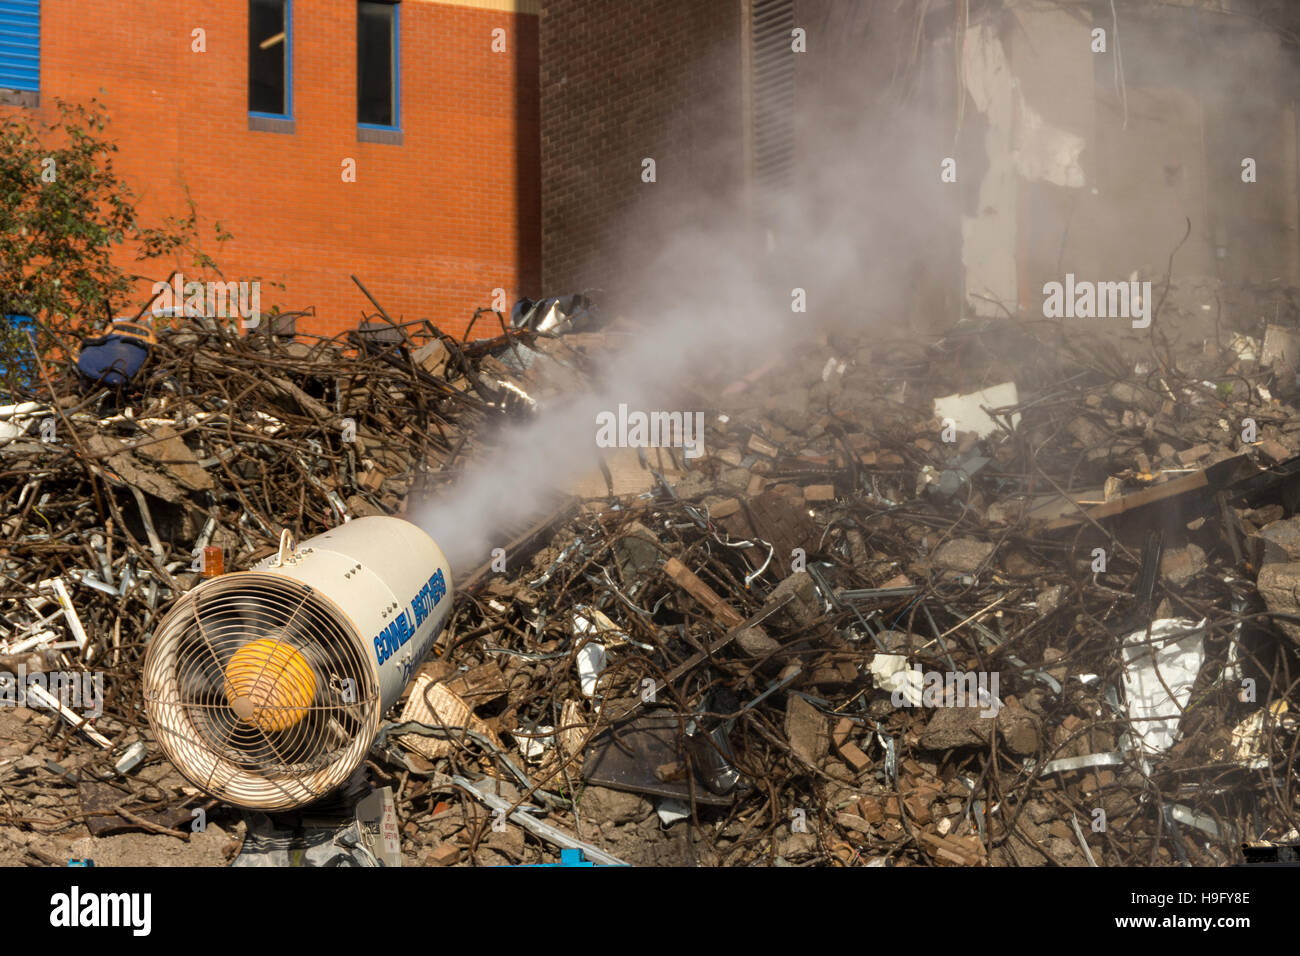 Water spray cannon for dust suppression, demolition of Telegraph House, Rochdale, Greater Manchester, England, UK. - Stock Image